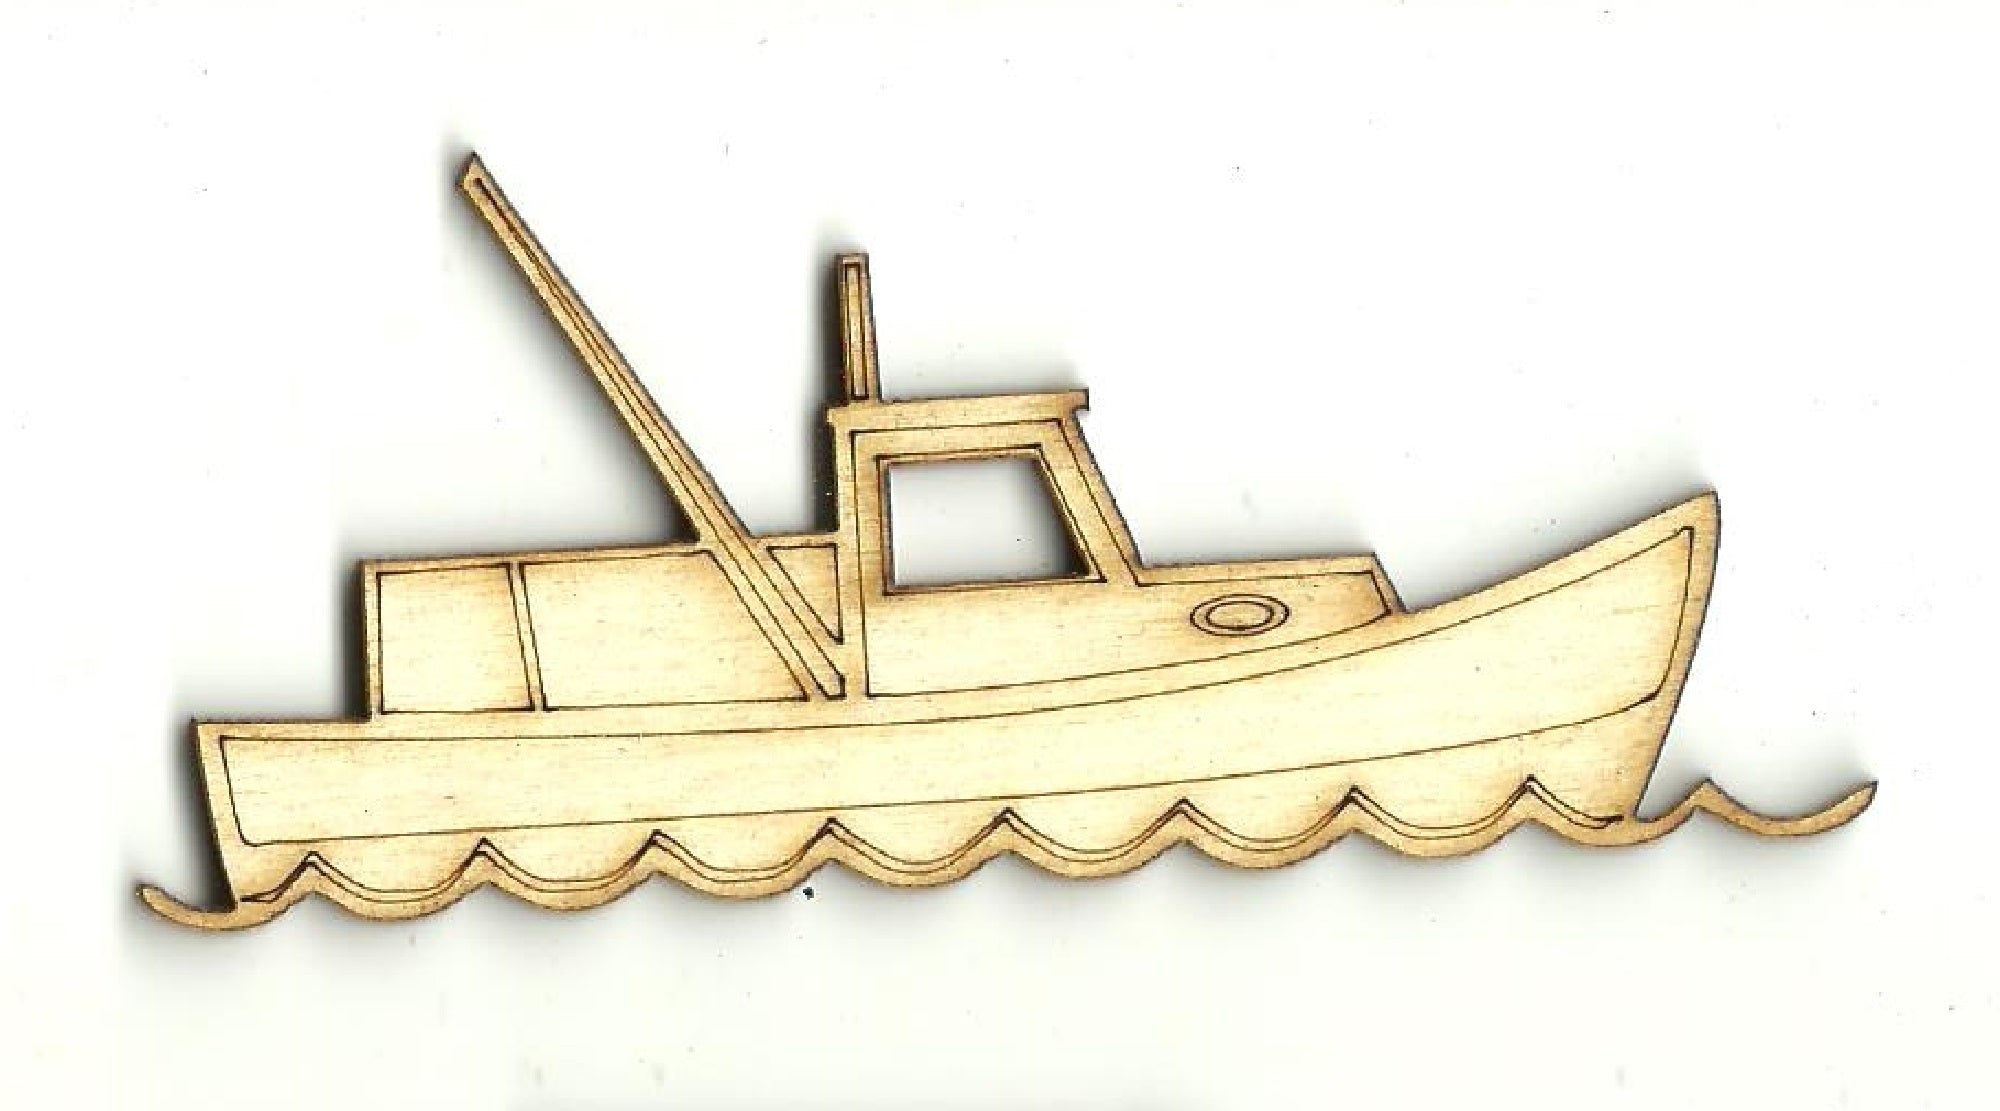 Shrimp Boat - Laser Cut Wood Shape BOT44